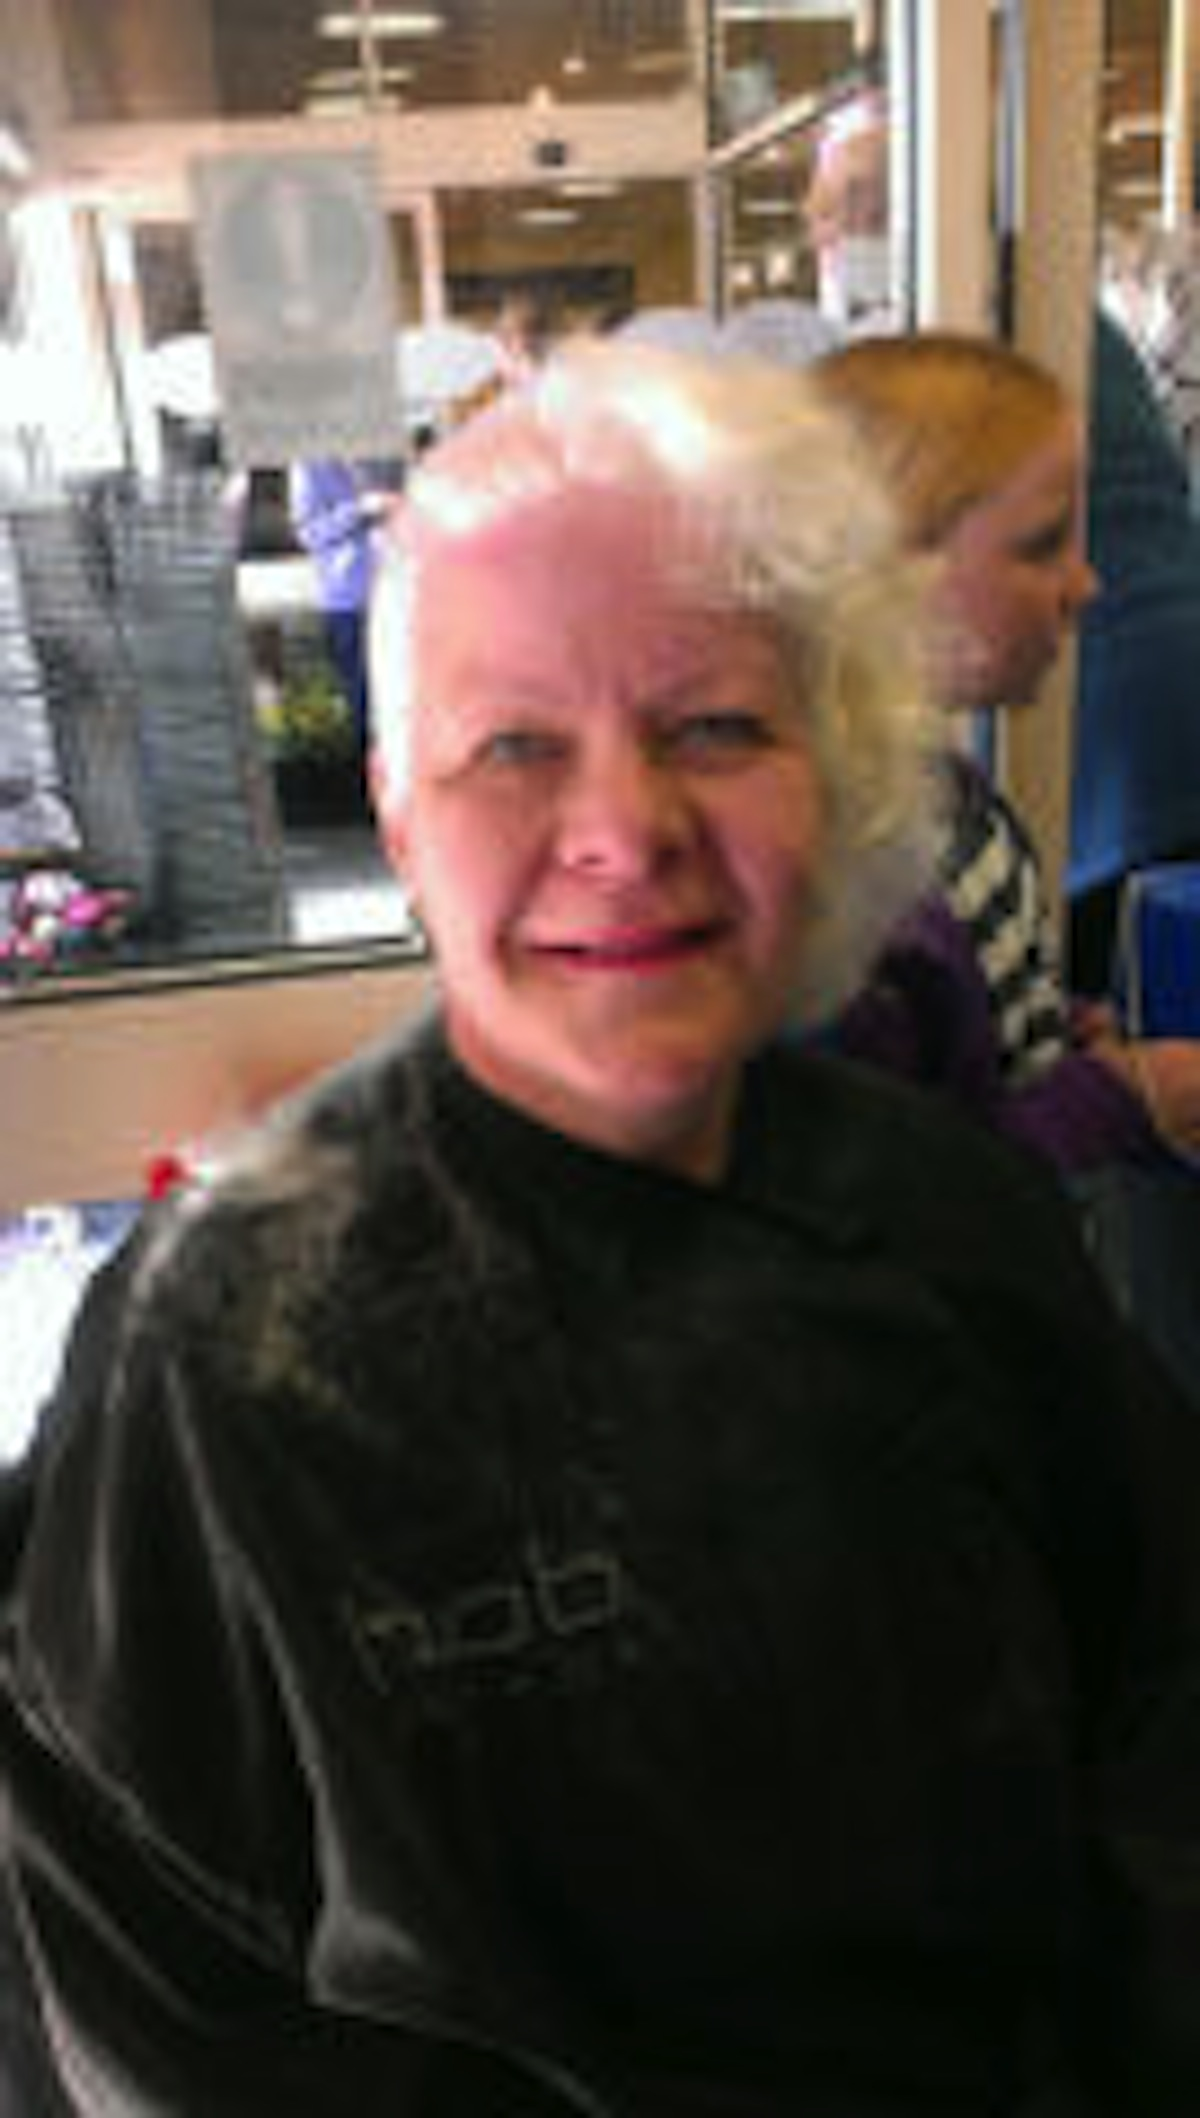 Pollyanna Boothby Tucker had her head shaved to raise money for the North London Hospice